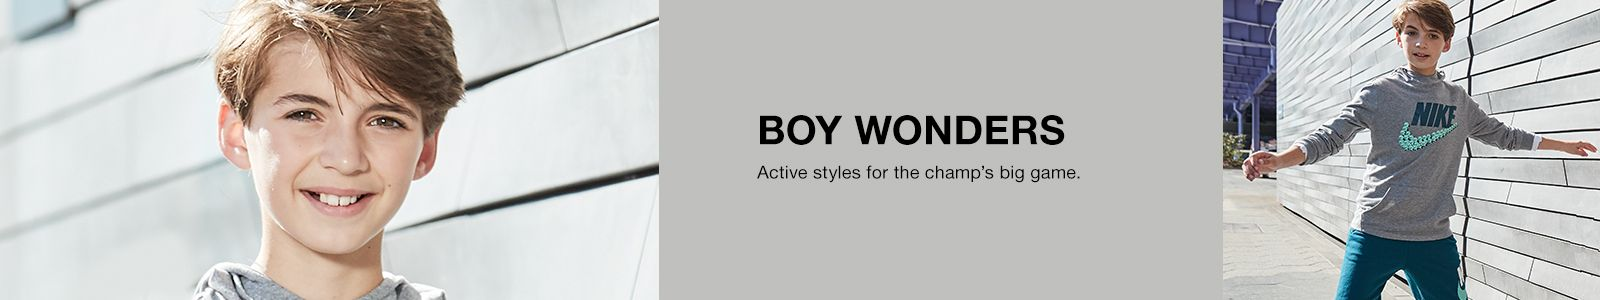 Boy Wonders, Active styles for the champ's big game